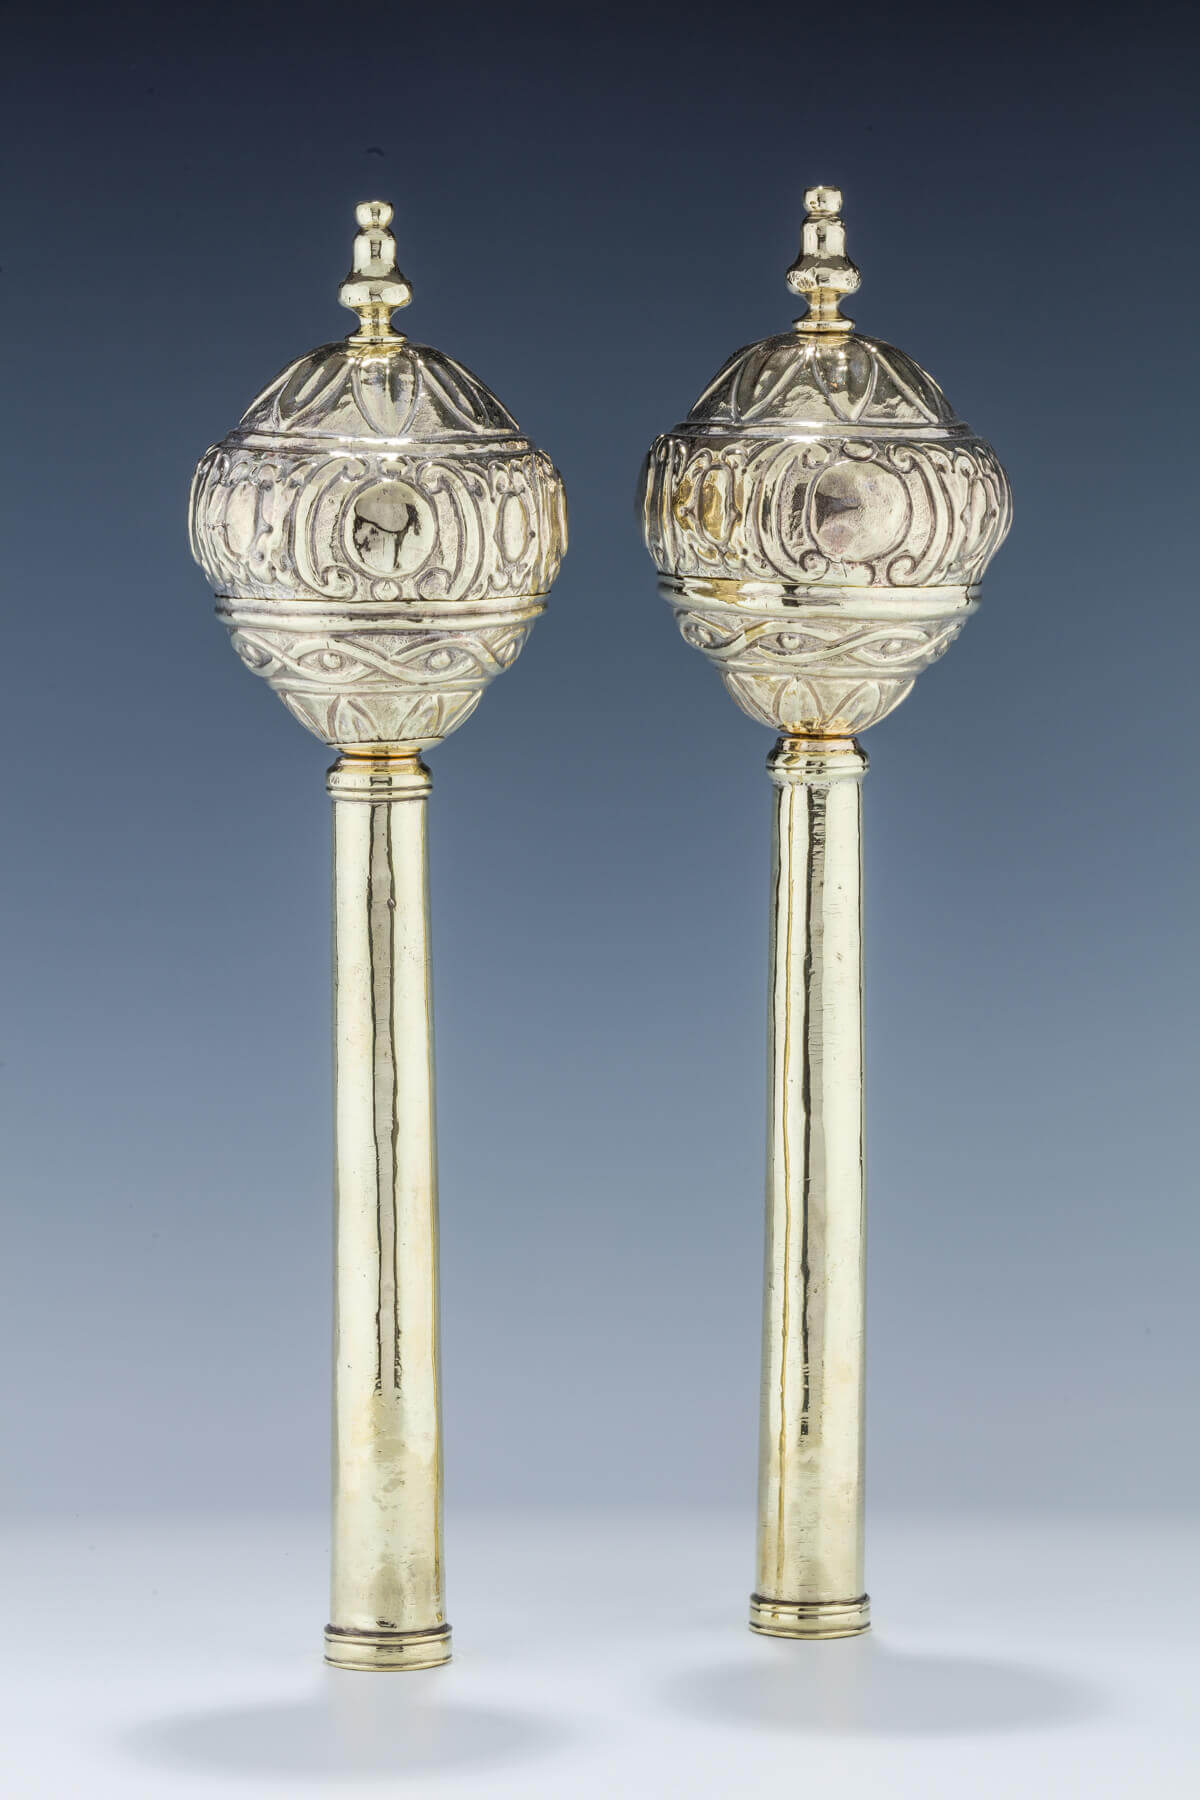 099. A PAIR OF SILVER TORAH FINIALS